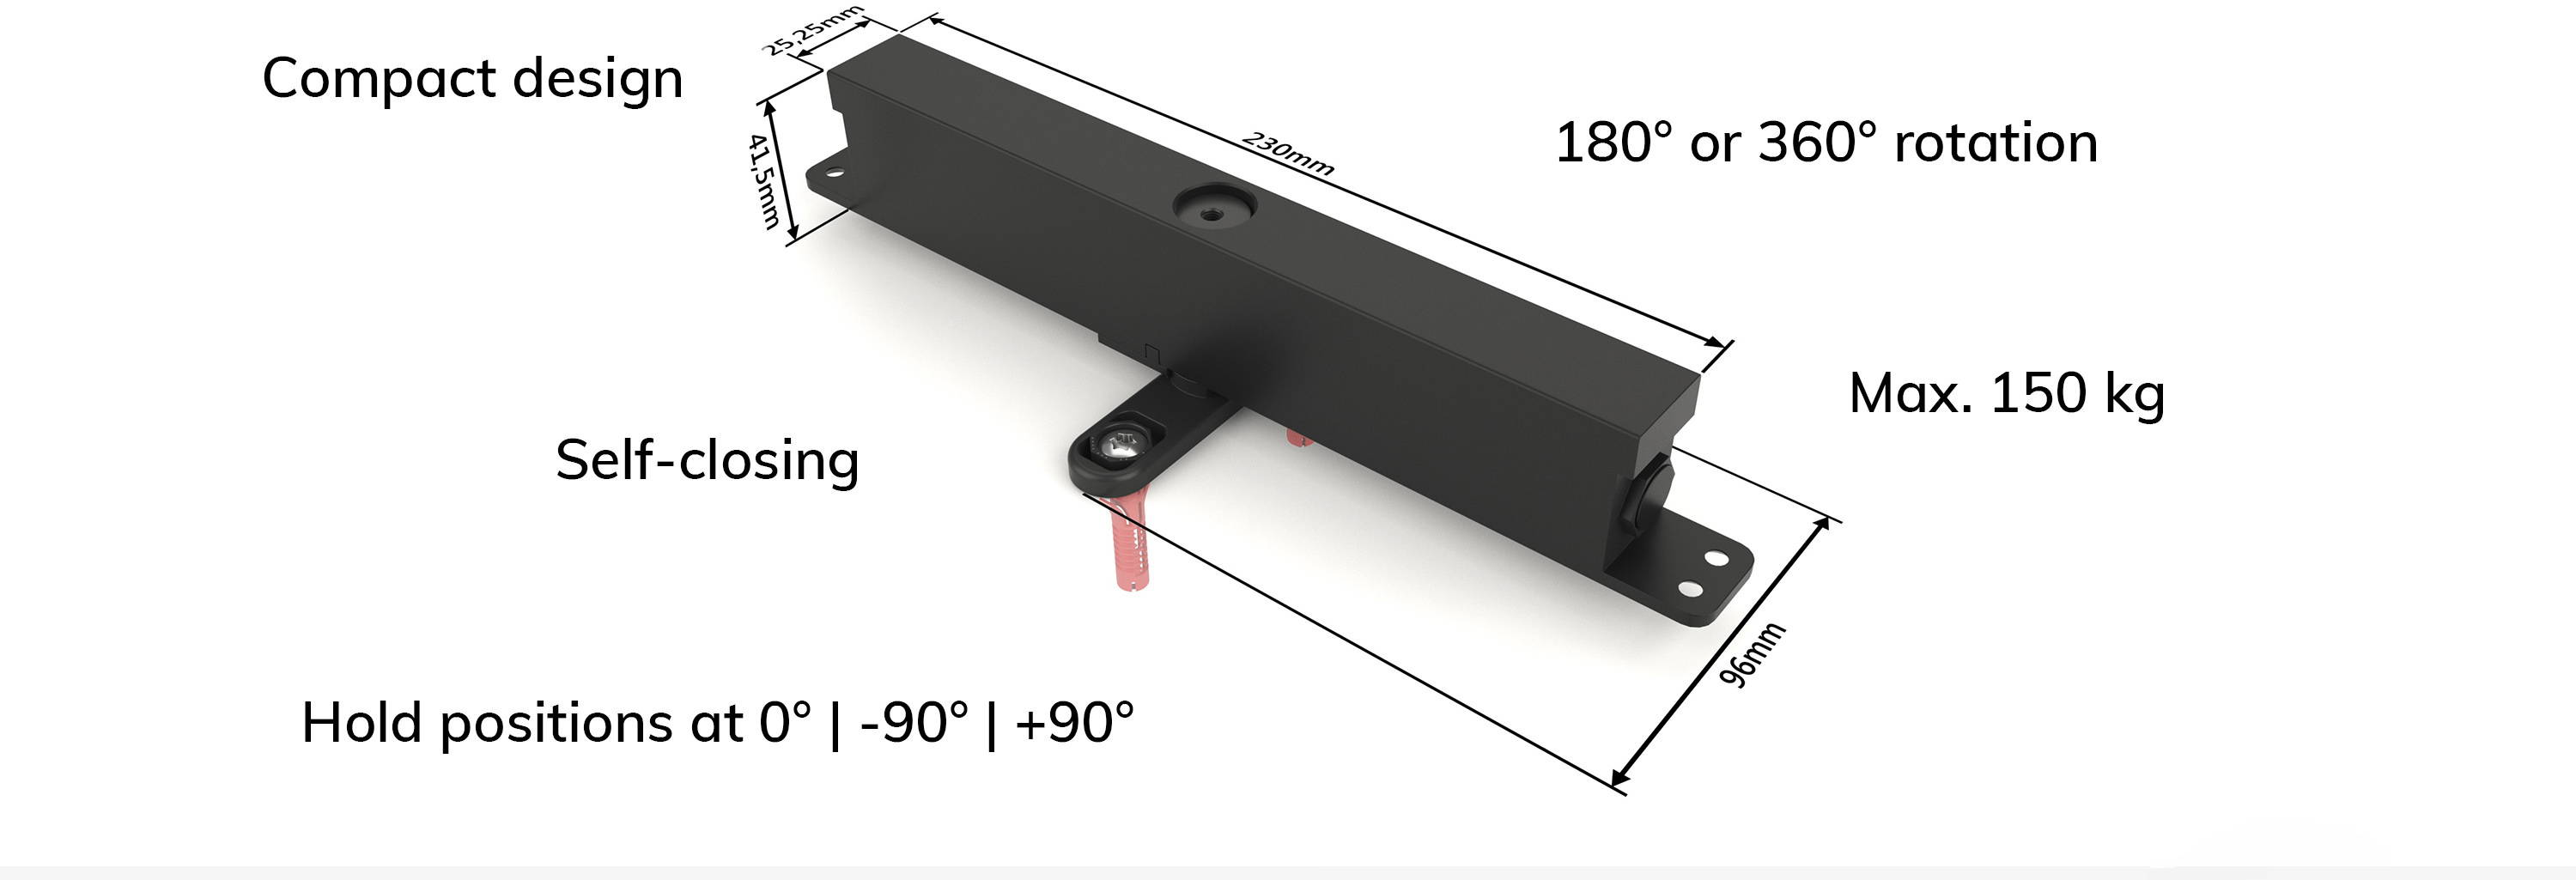 Self-closing pivot hinge for internal pivot doors